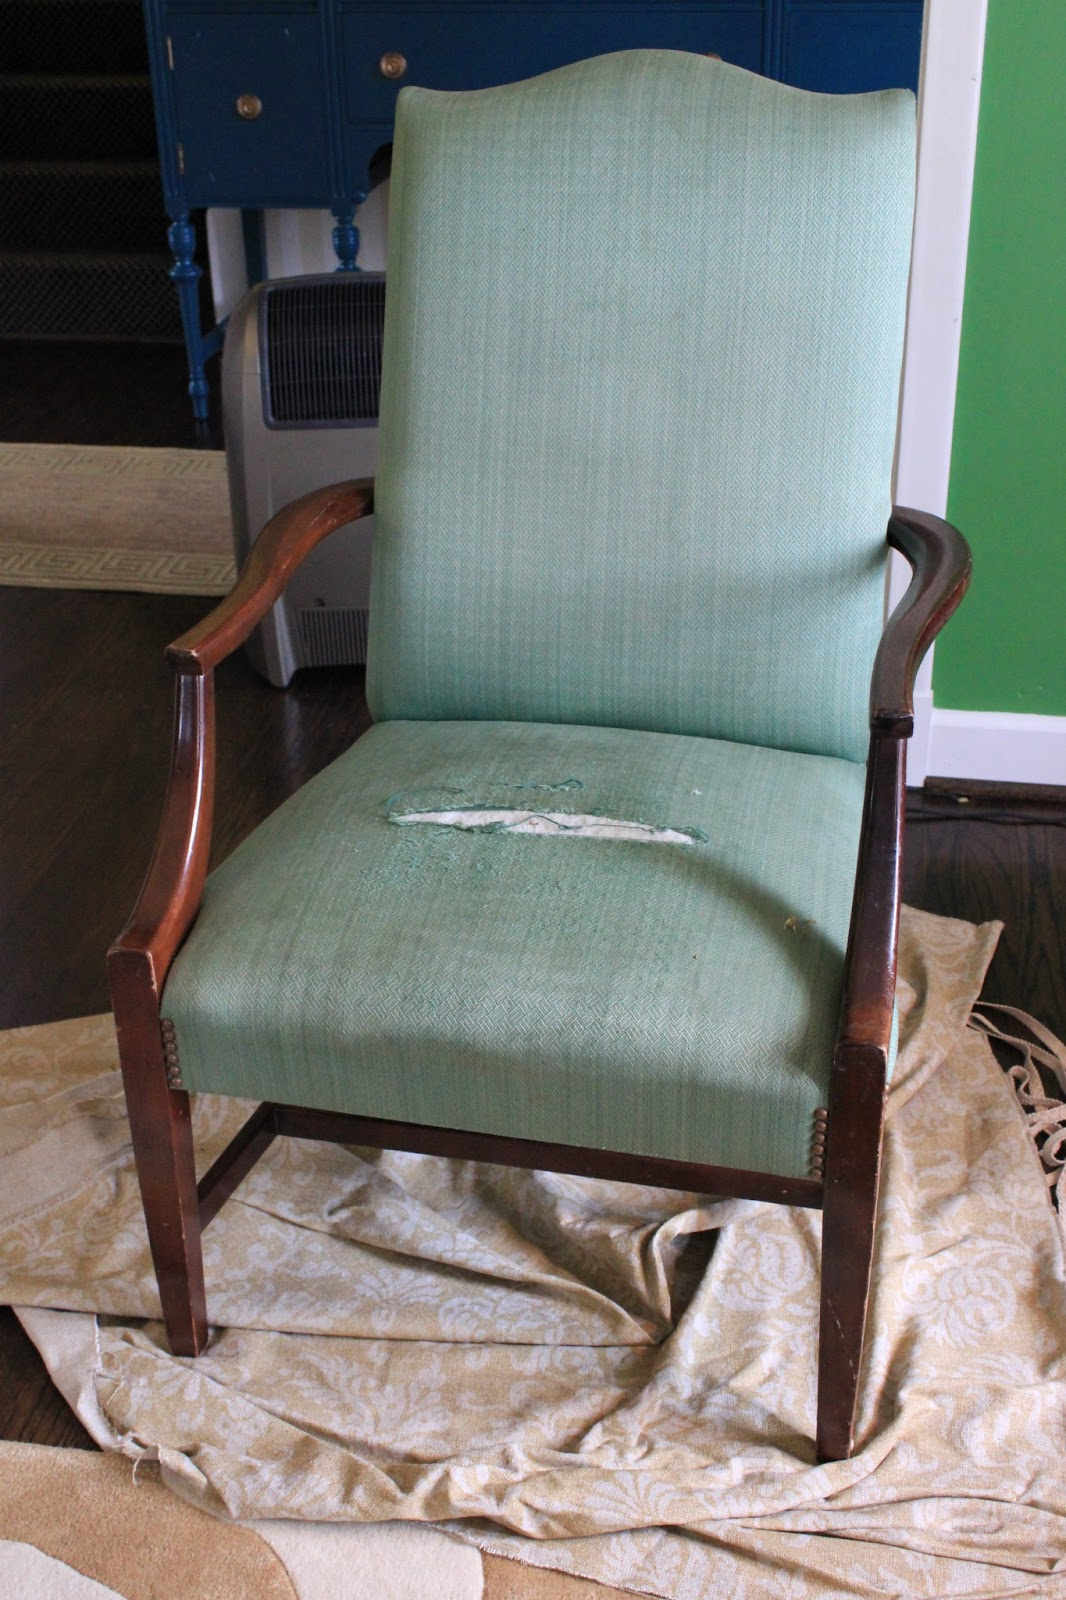 Reupholstering A Chair Papasan Pier One Westhampton Diy How To Reupholster